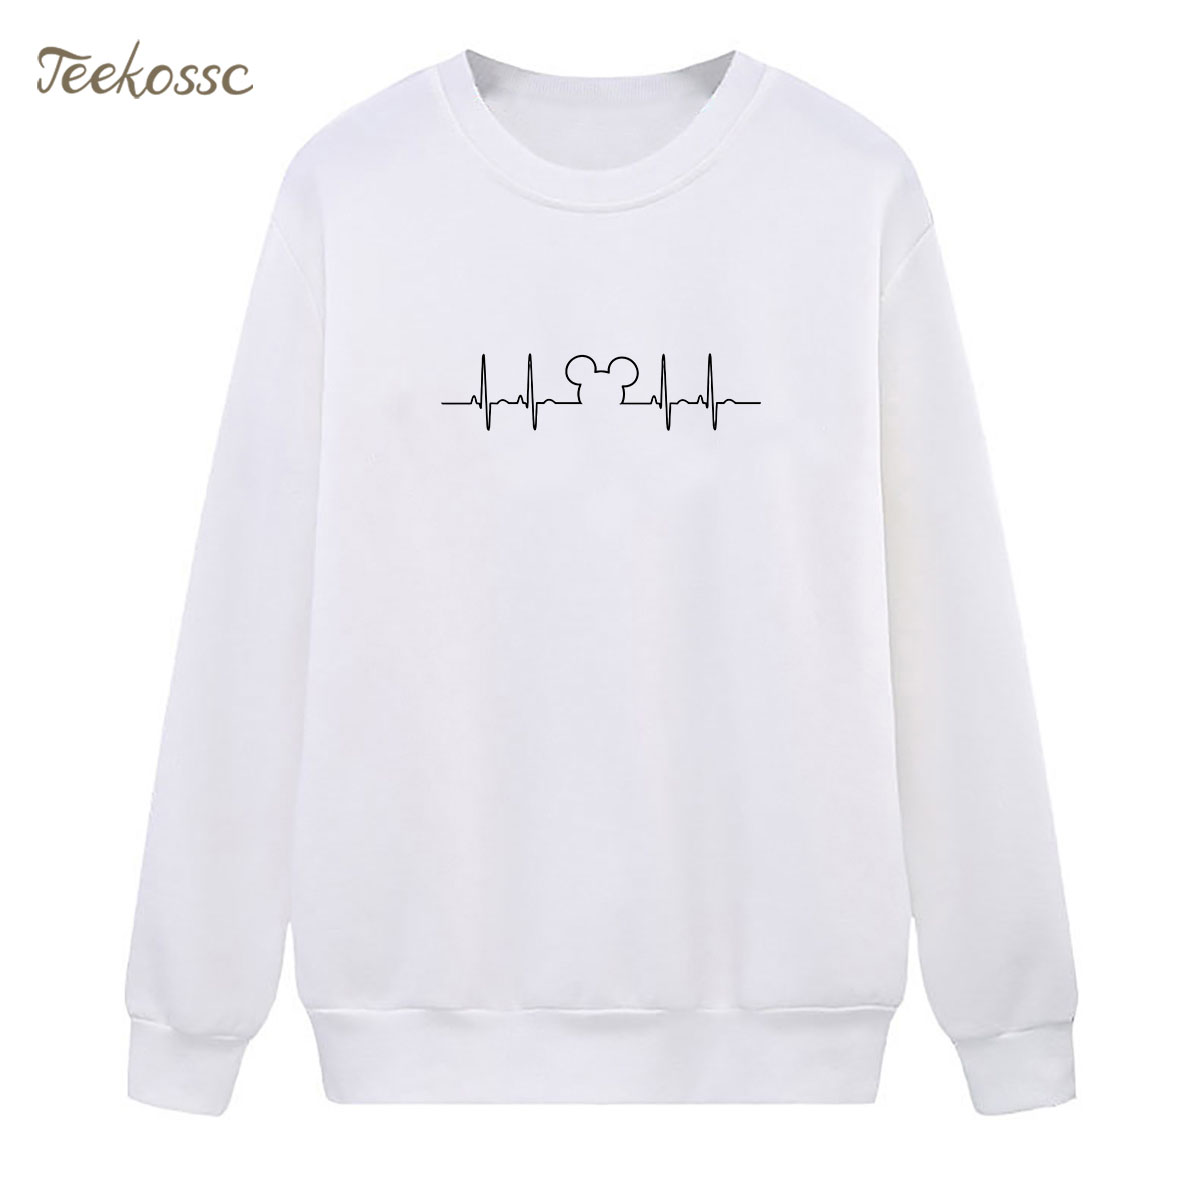 Cute Simple Sweatshirt White Hoodie 2018 New Design Winter Autumn Women Lasdies Pullover Fleece Warm Loose Casual Streetwear